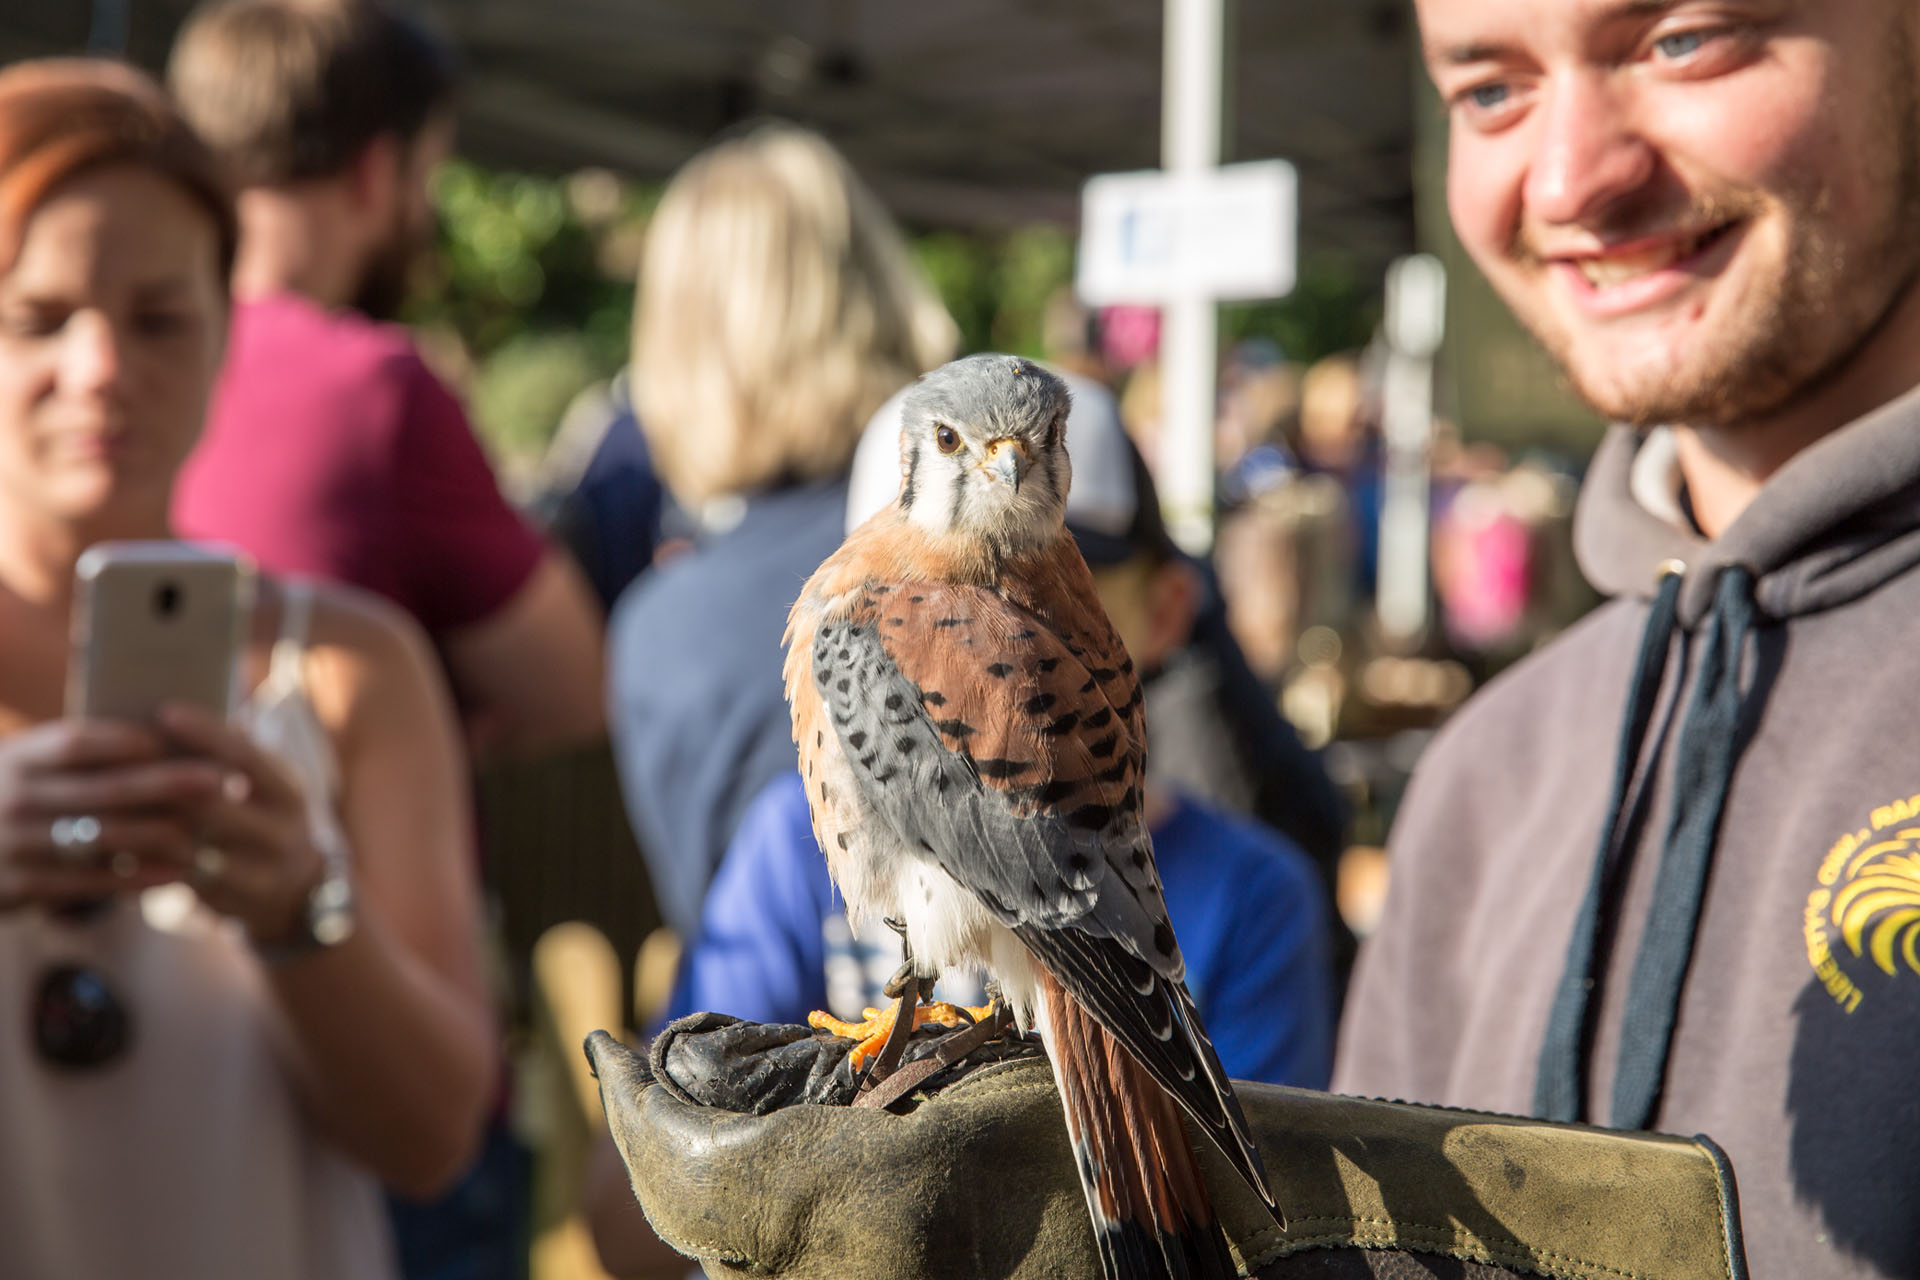 Visitor with Bird of prey on their hand